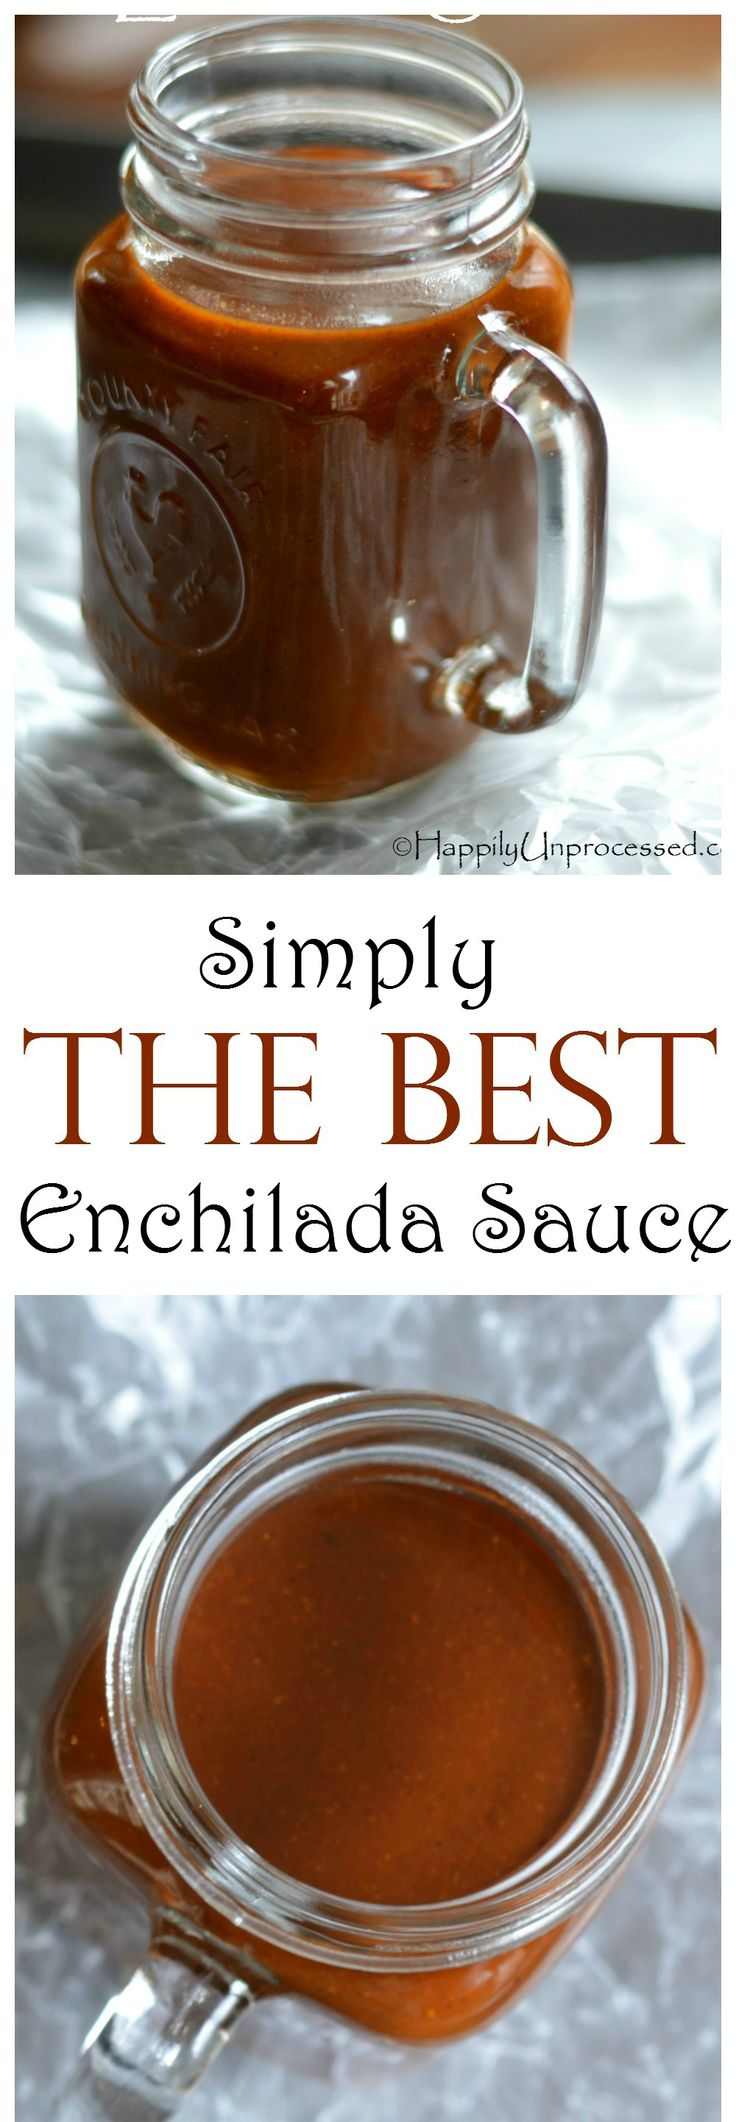 simply- the-best-enchilada-sauce collage2